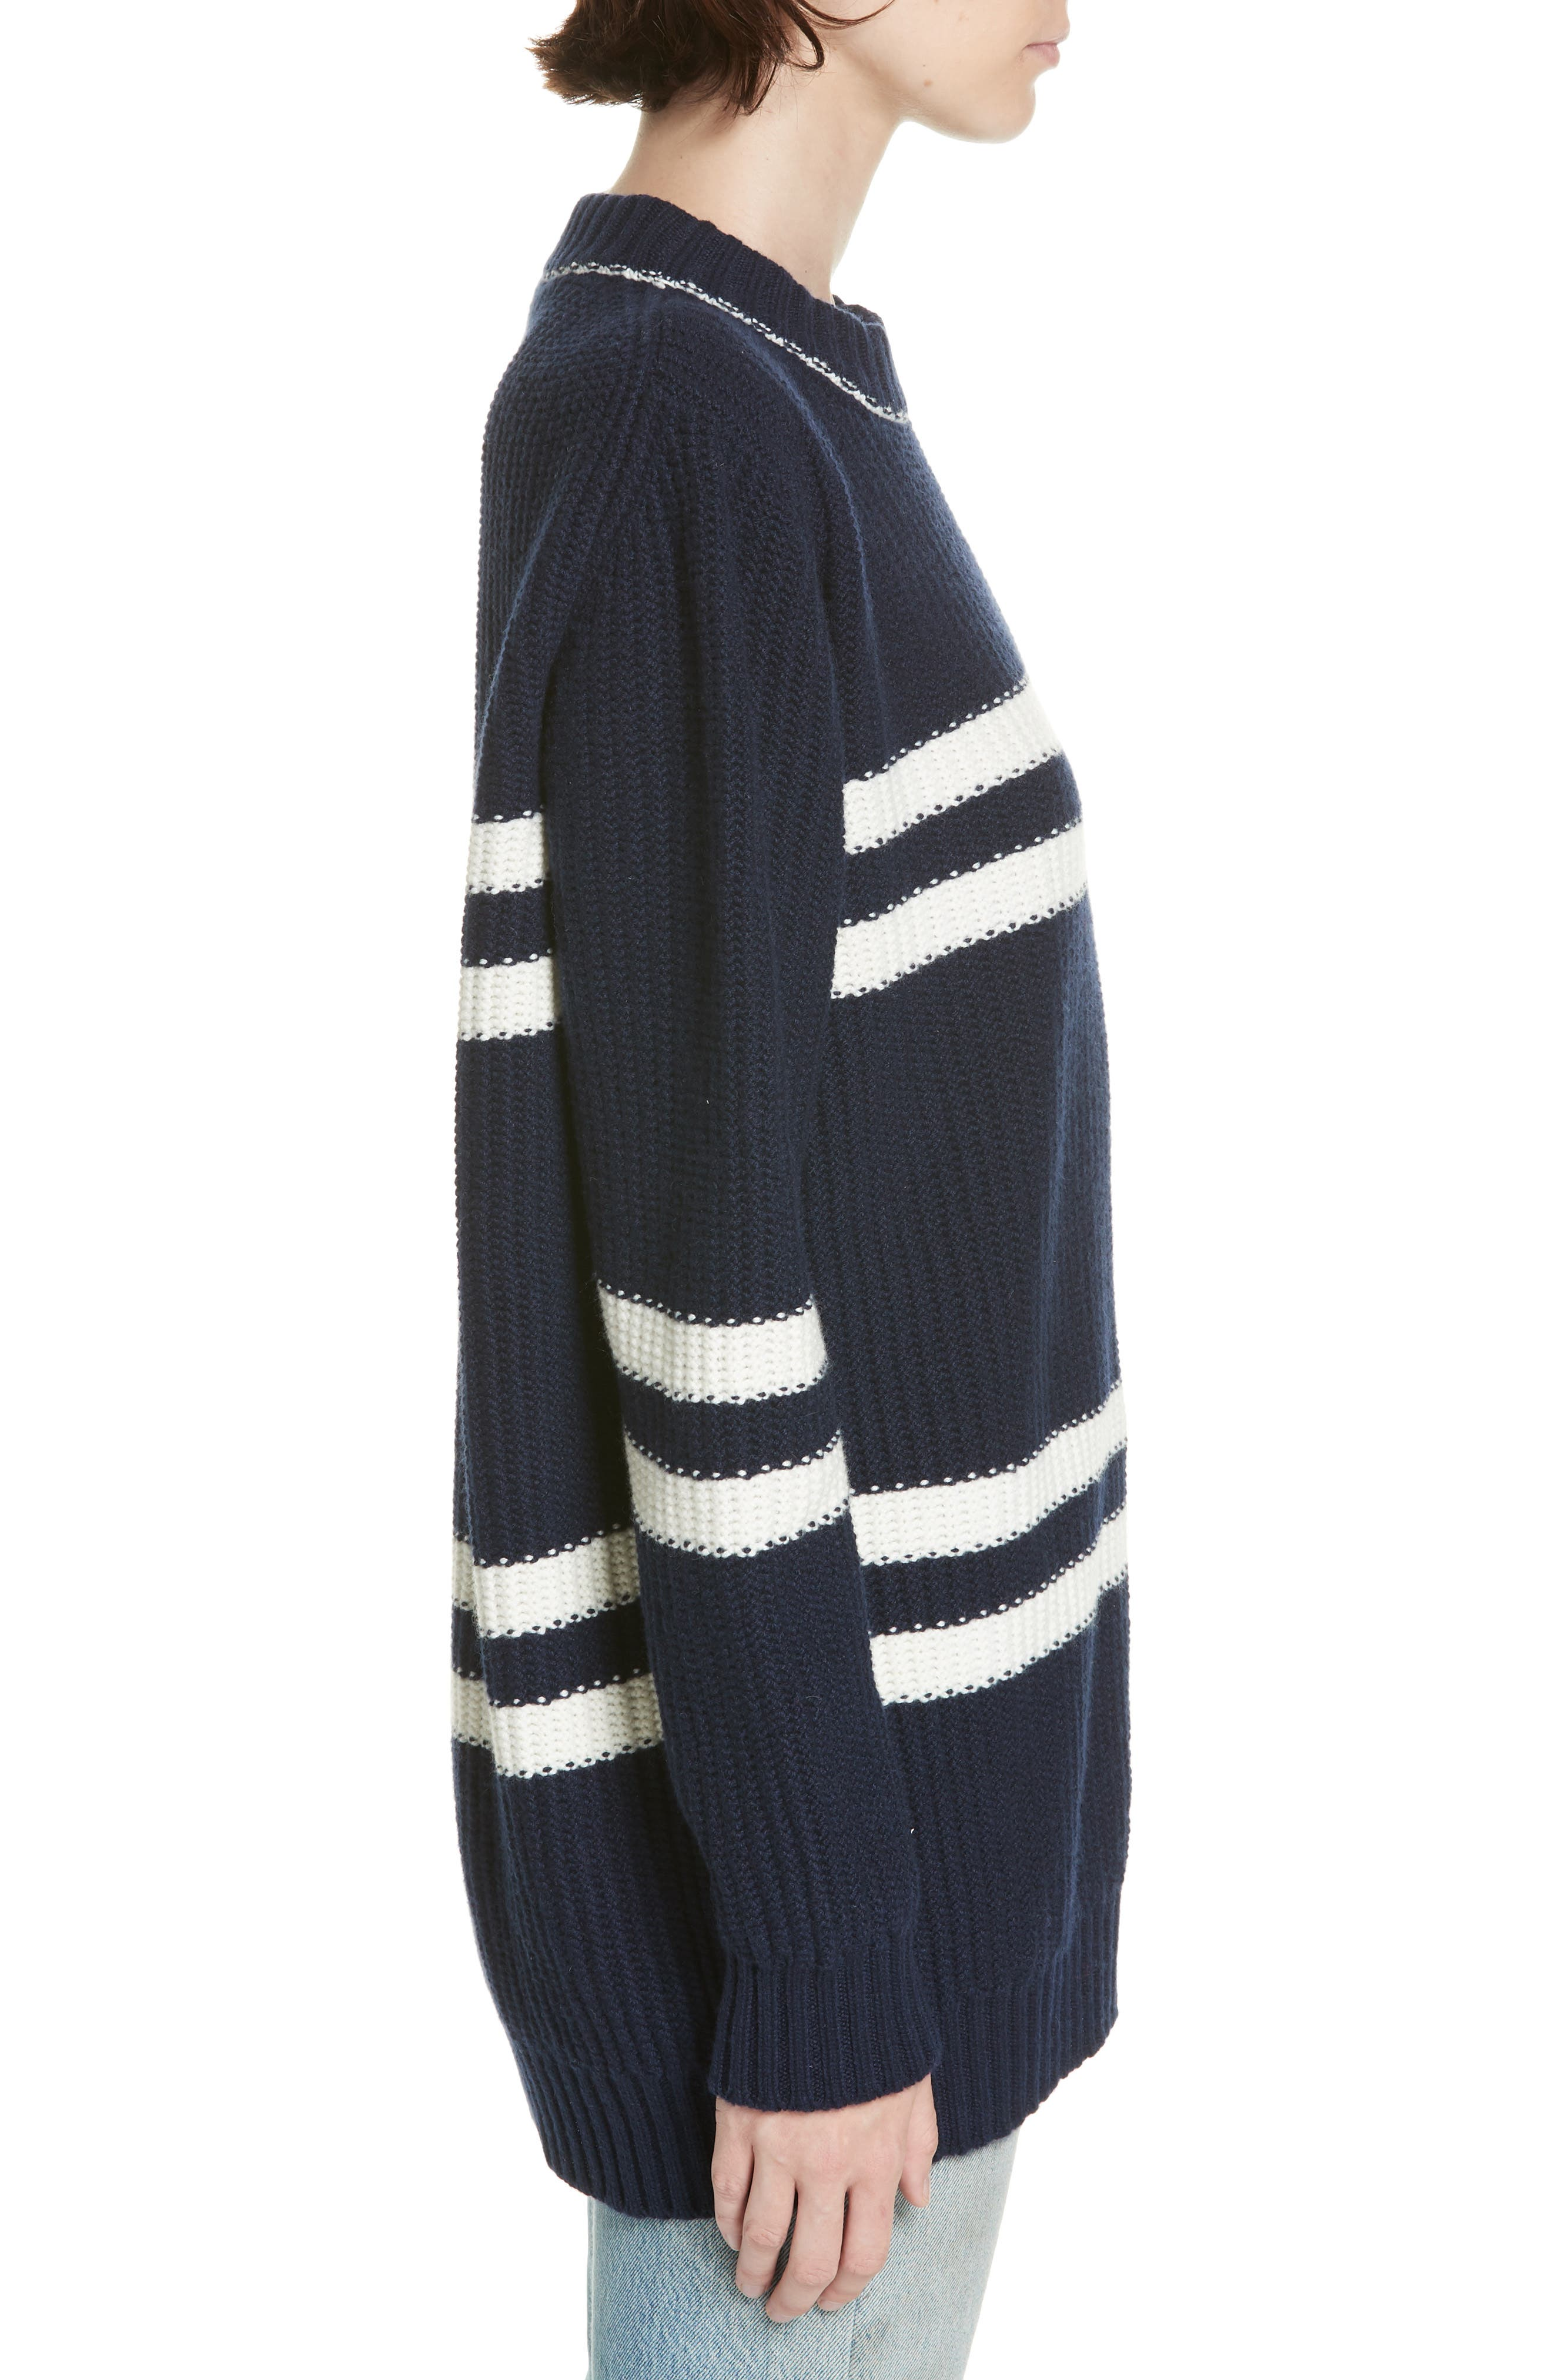 Tieve Stripe Cashmere & Cotton Sweater,                             Alternate thumbnail 3, color,                             NAVY/ ECRU